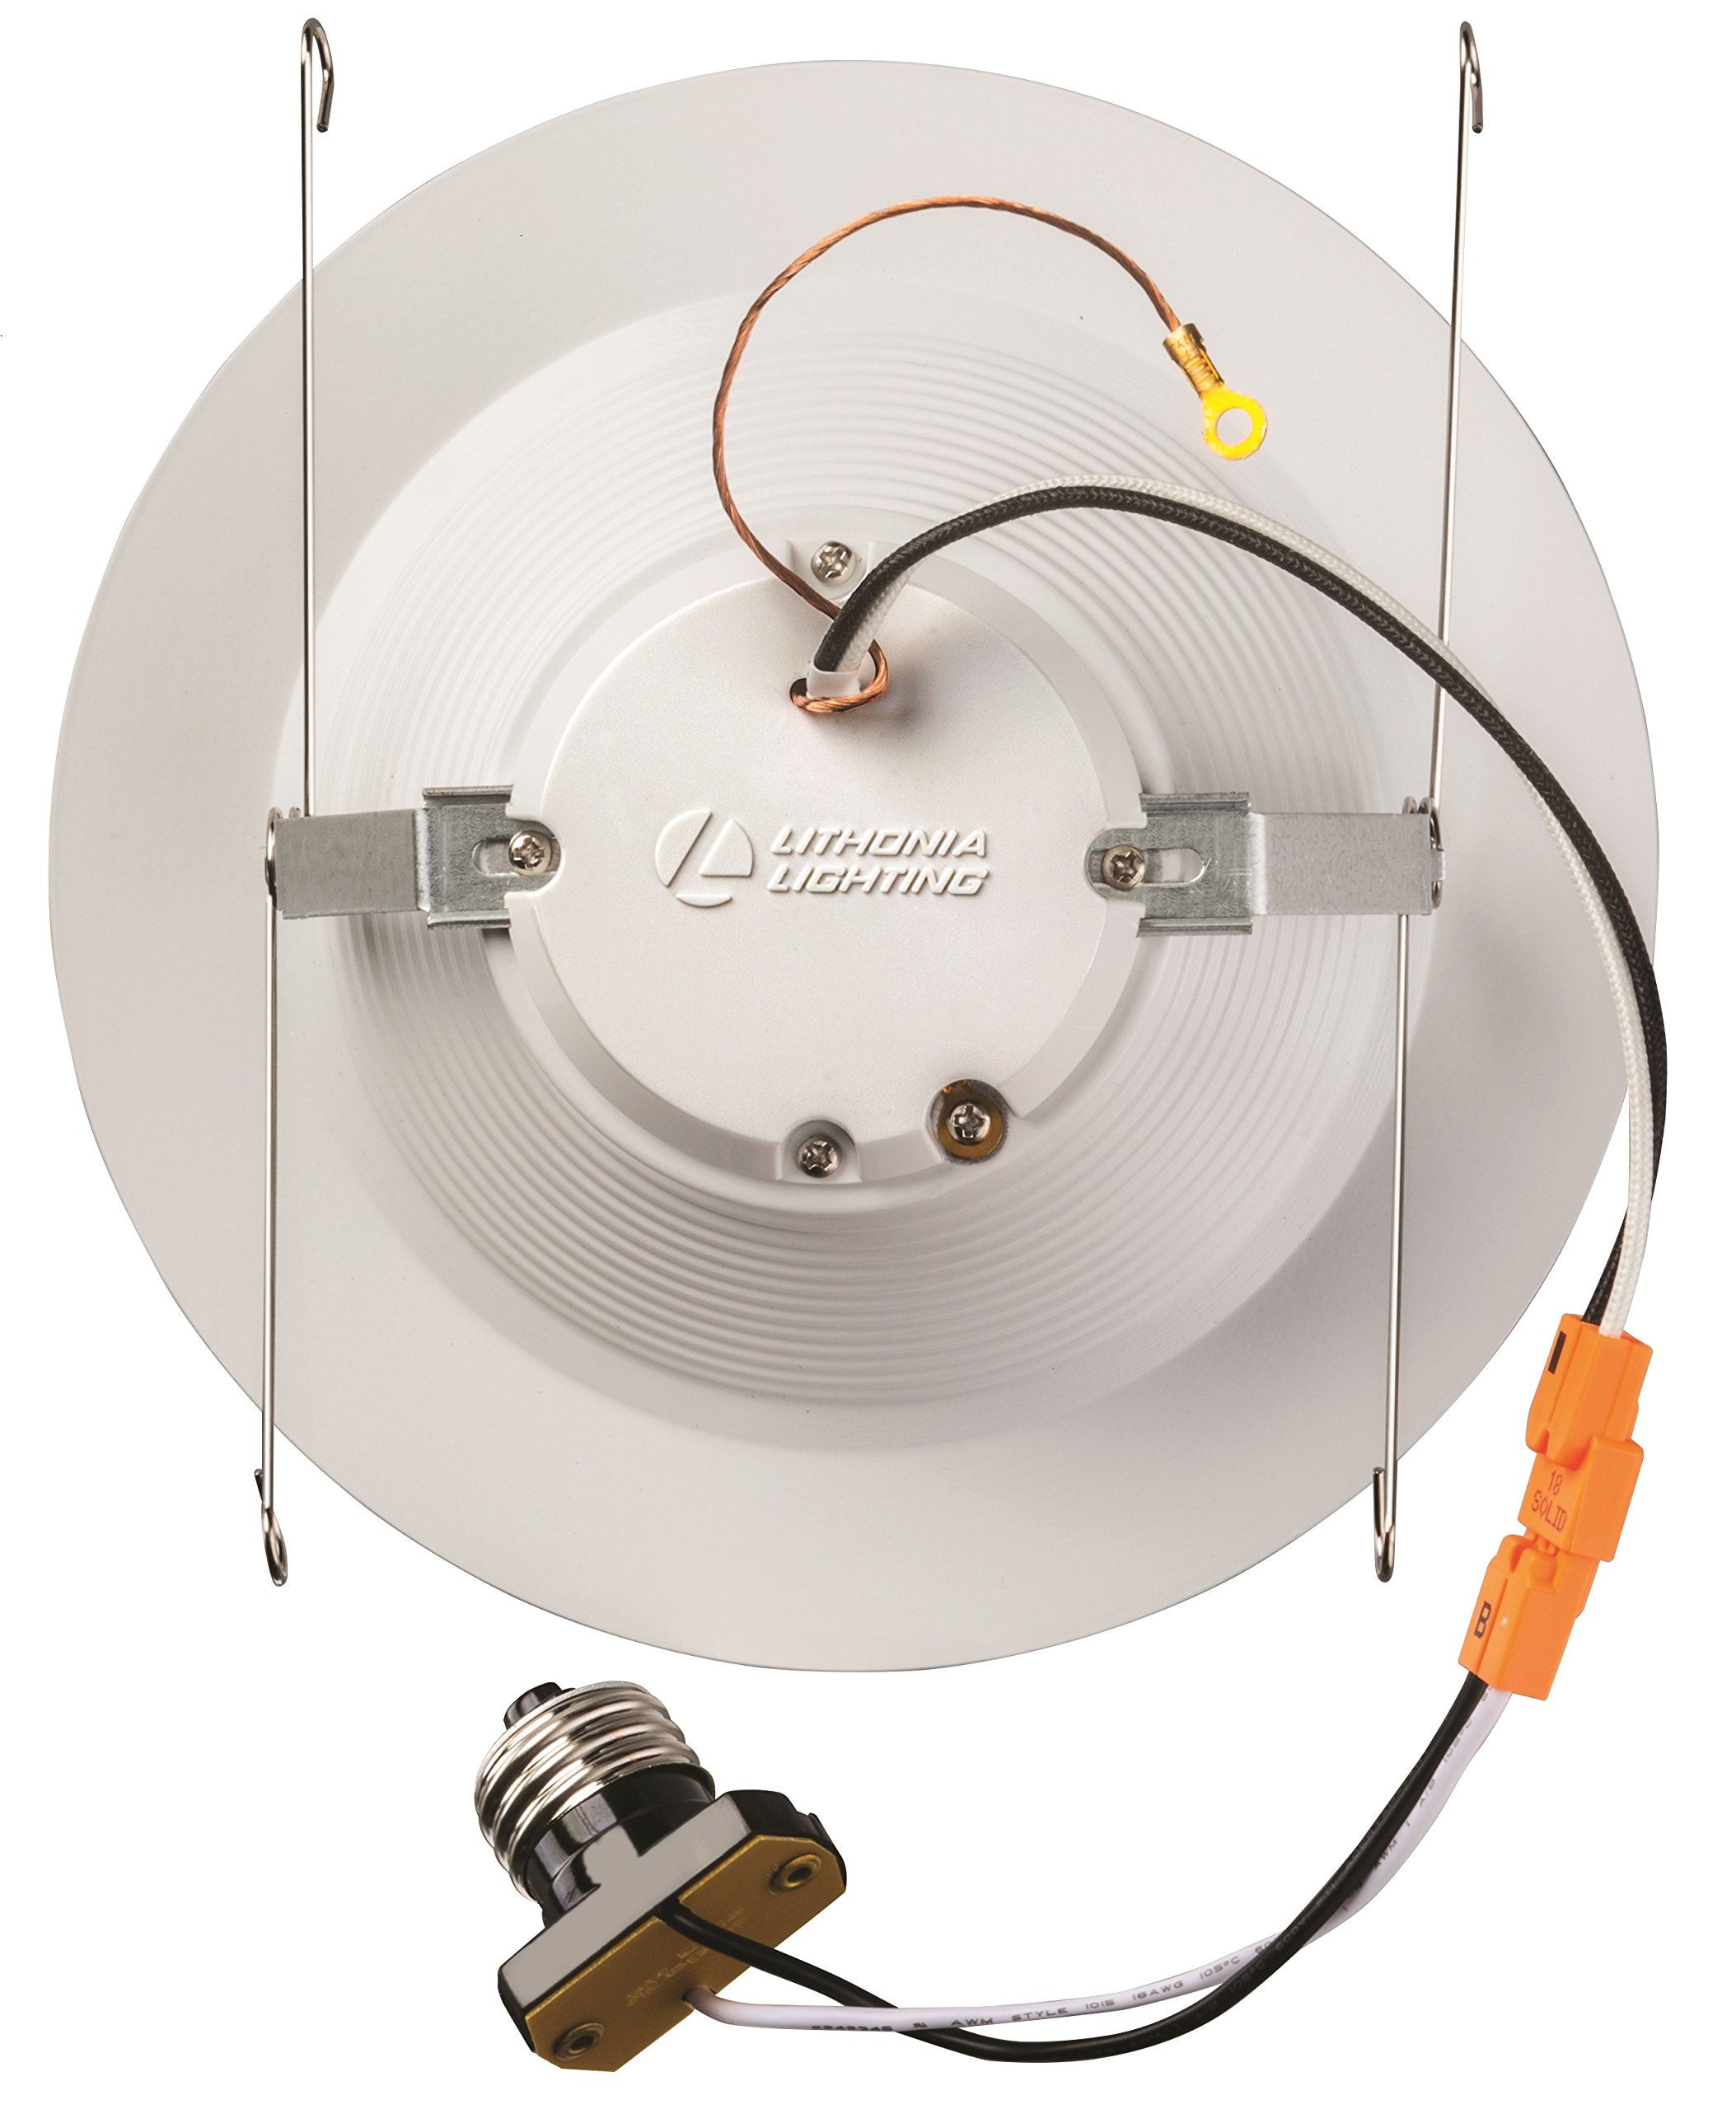 Lithonia Lighting 5/6 Inch White Retrofit LED Recessed Downlight, 12W Dimmable with 5000K Day White, 825 Lumens by Lithonia Lighting (Image #3)